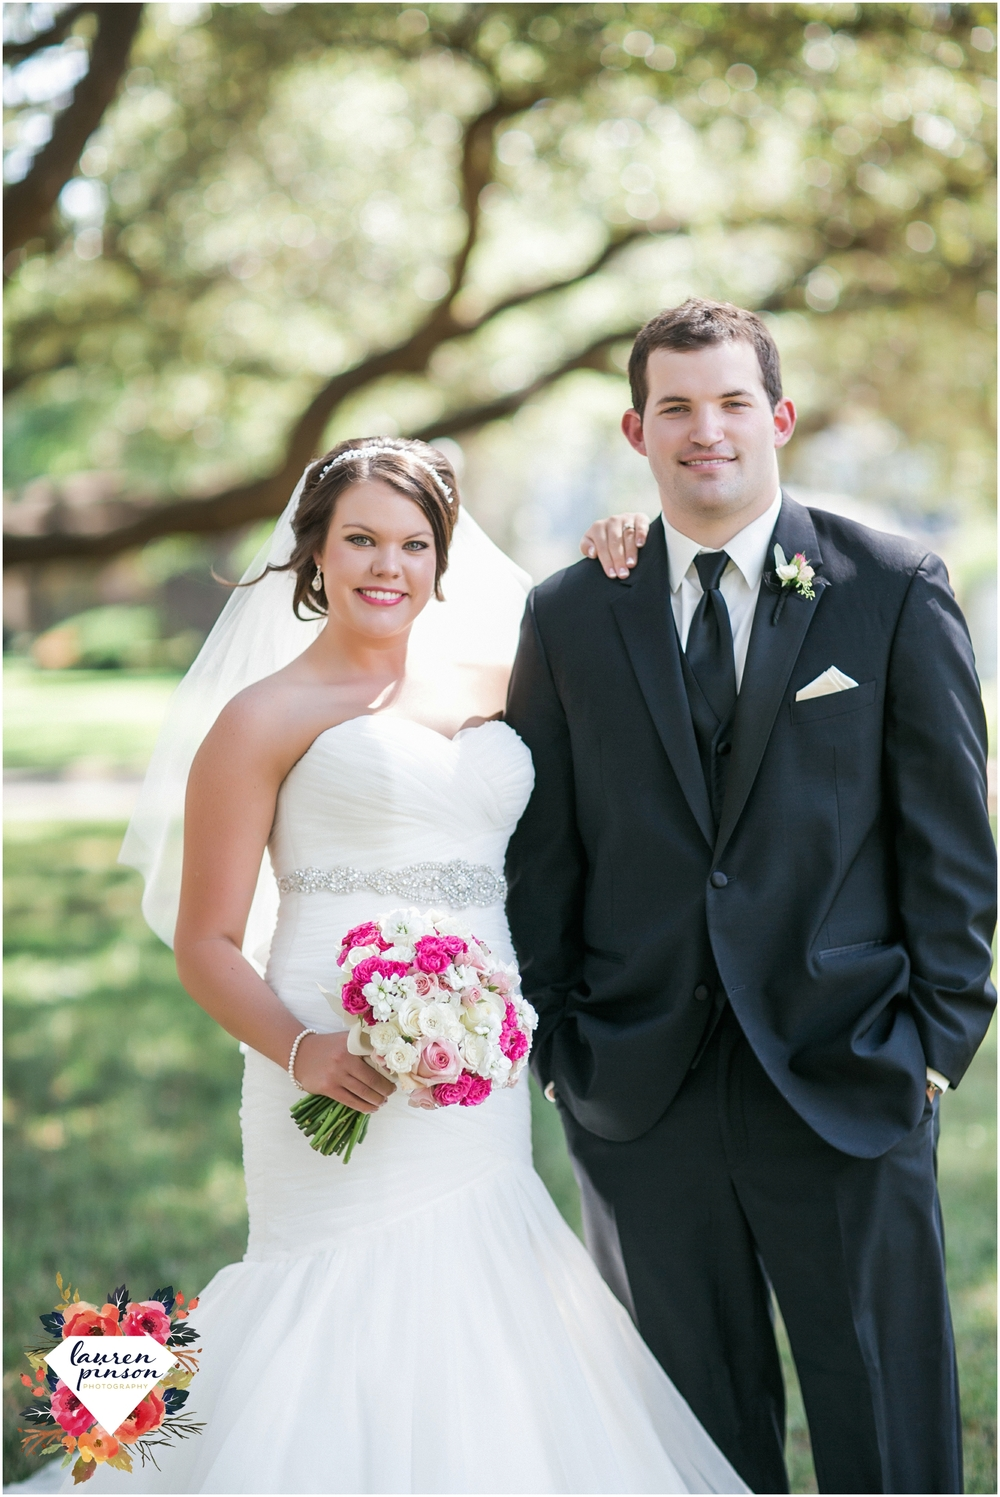 wichita-falls-wedding-photographer-kemp-center-at-the-forum-photography-two-clever-chicks_1008.jpg